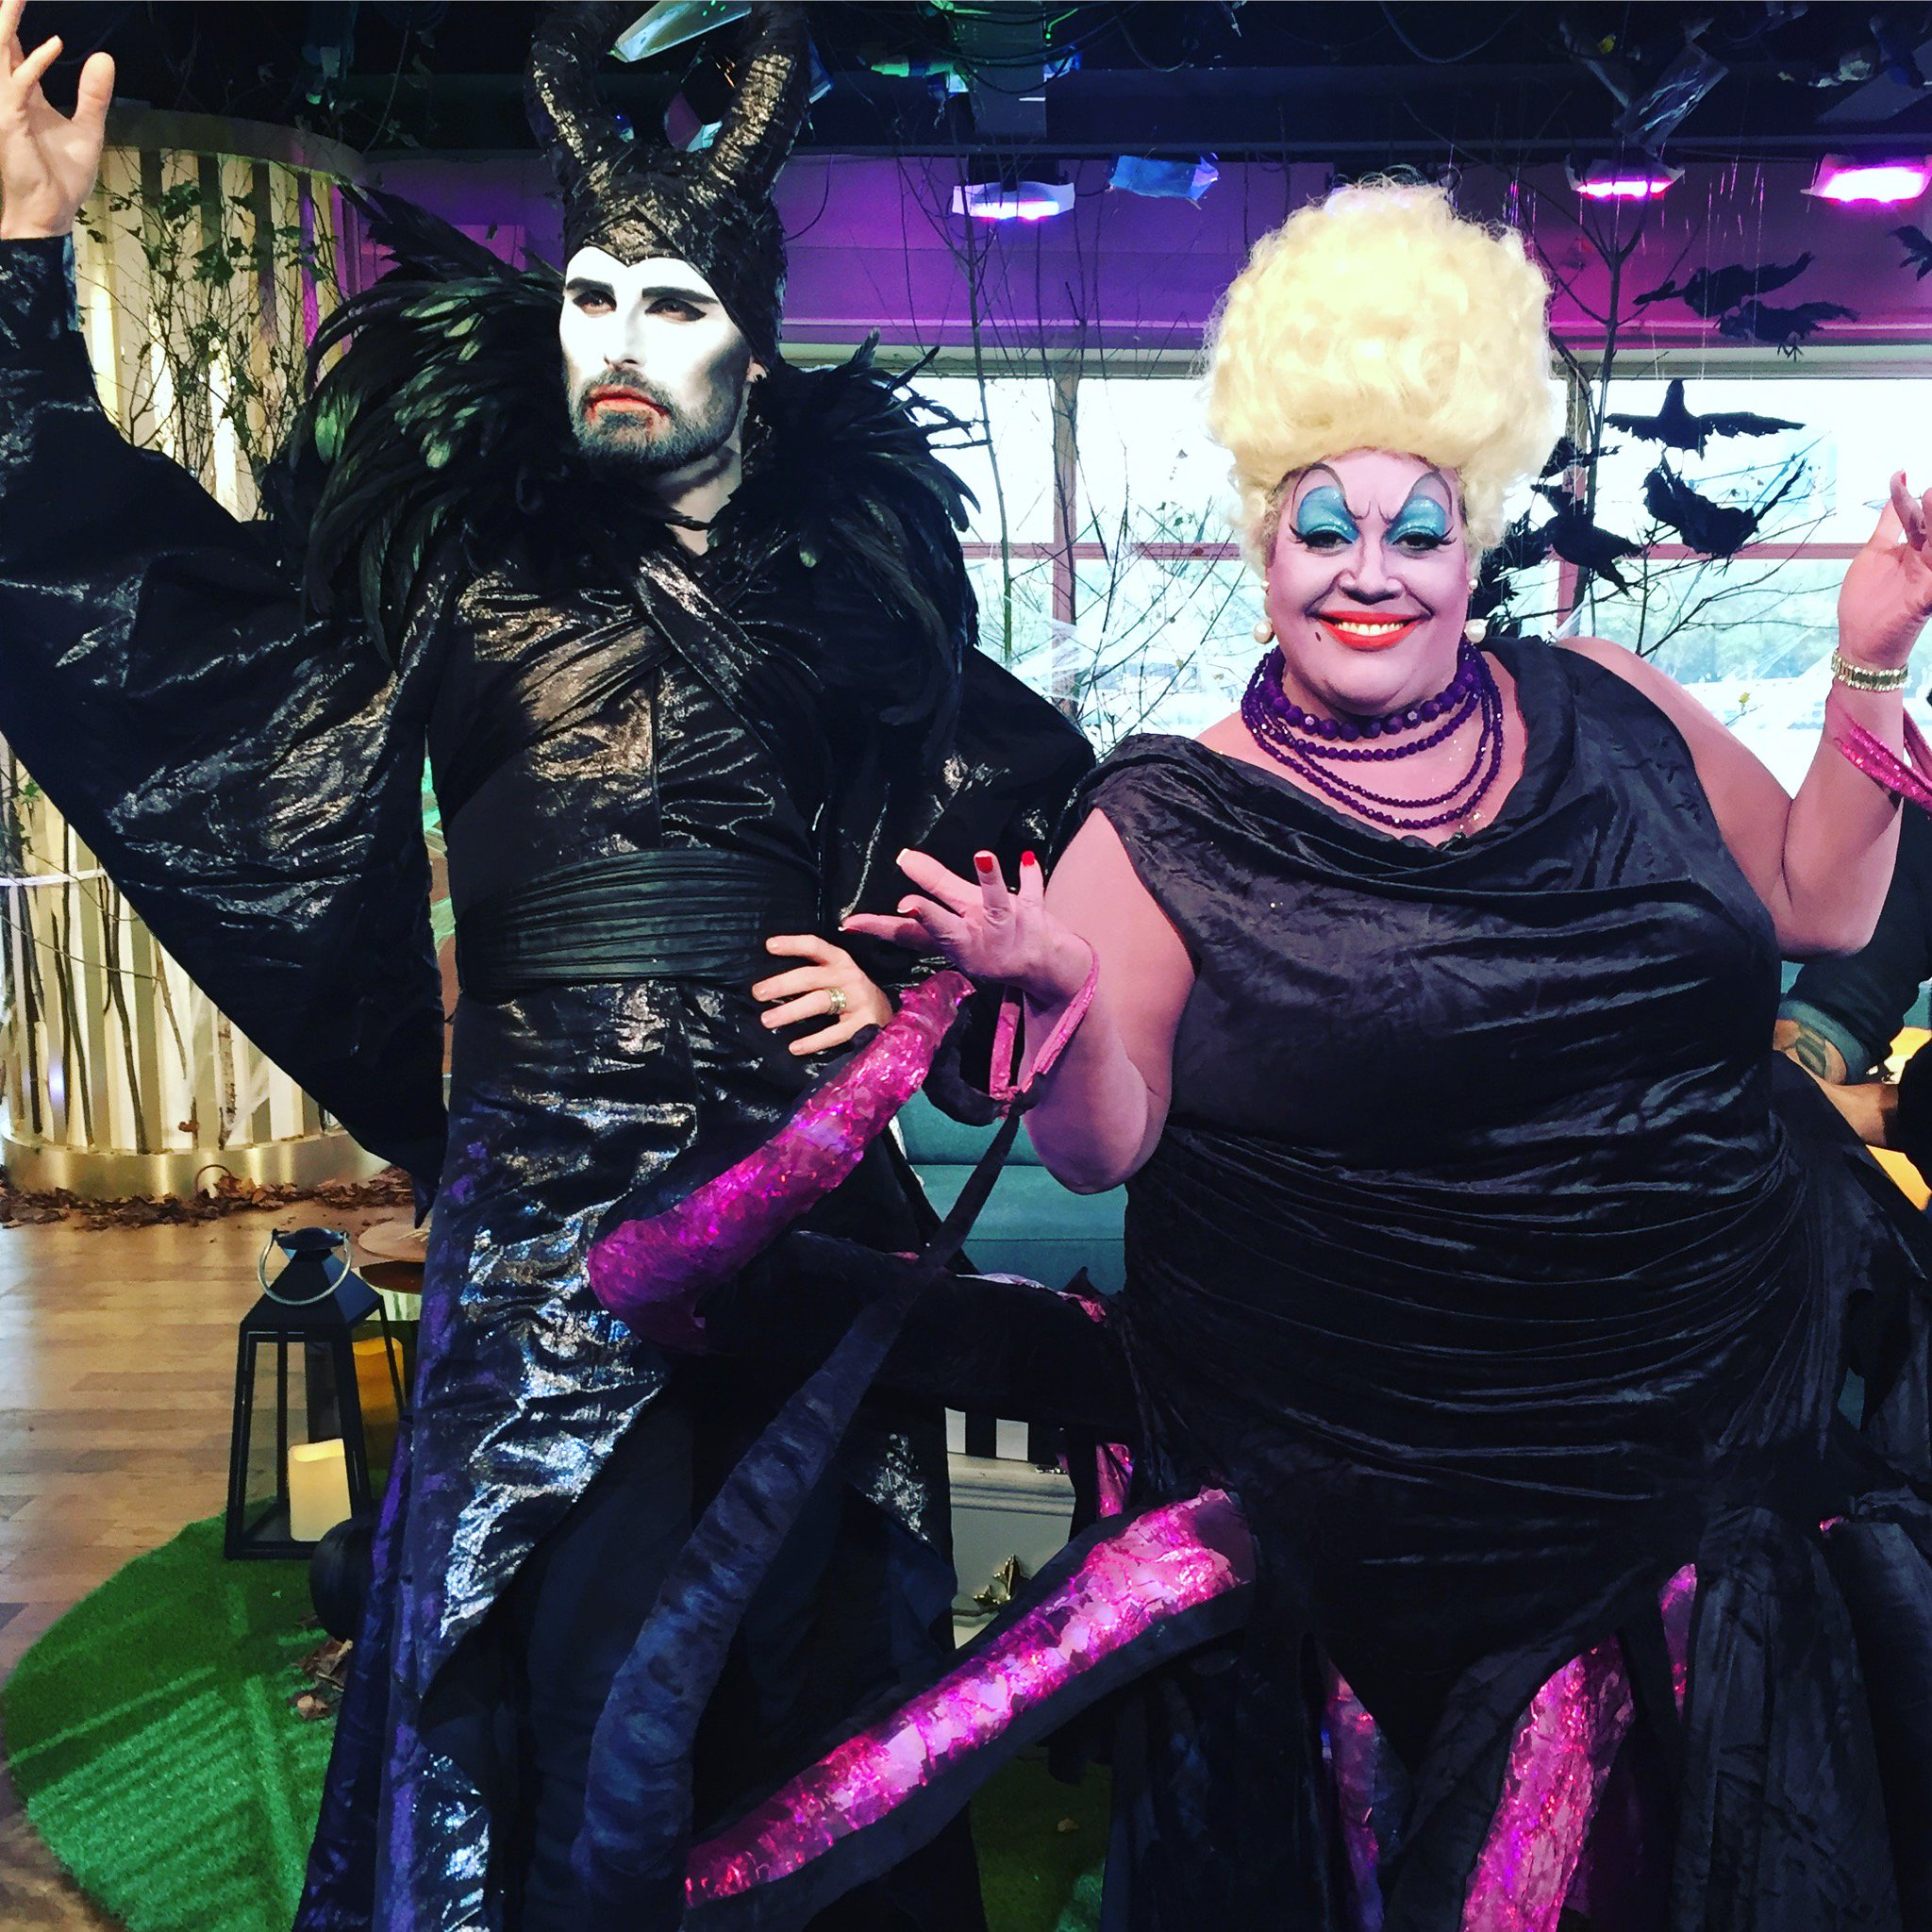 RT @thismorning: Maleficent and Ursula have joined their wicked forces! 😈 @Rylan @AlisonHammond2 https://t.co/CQebjJHojn